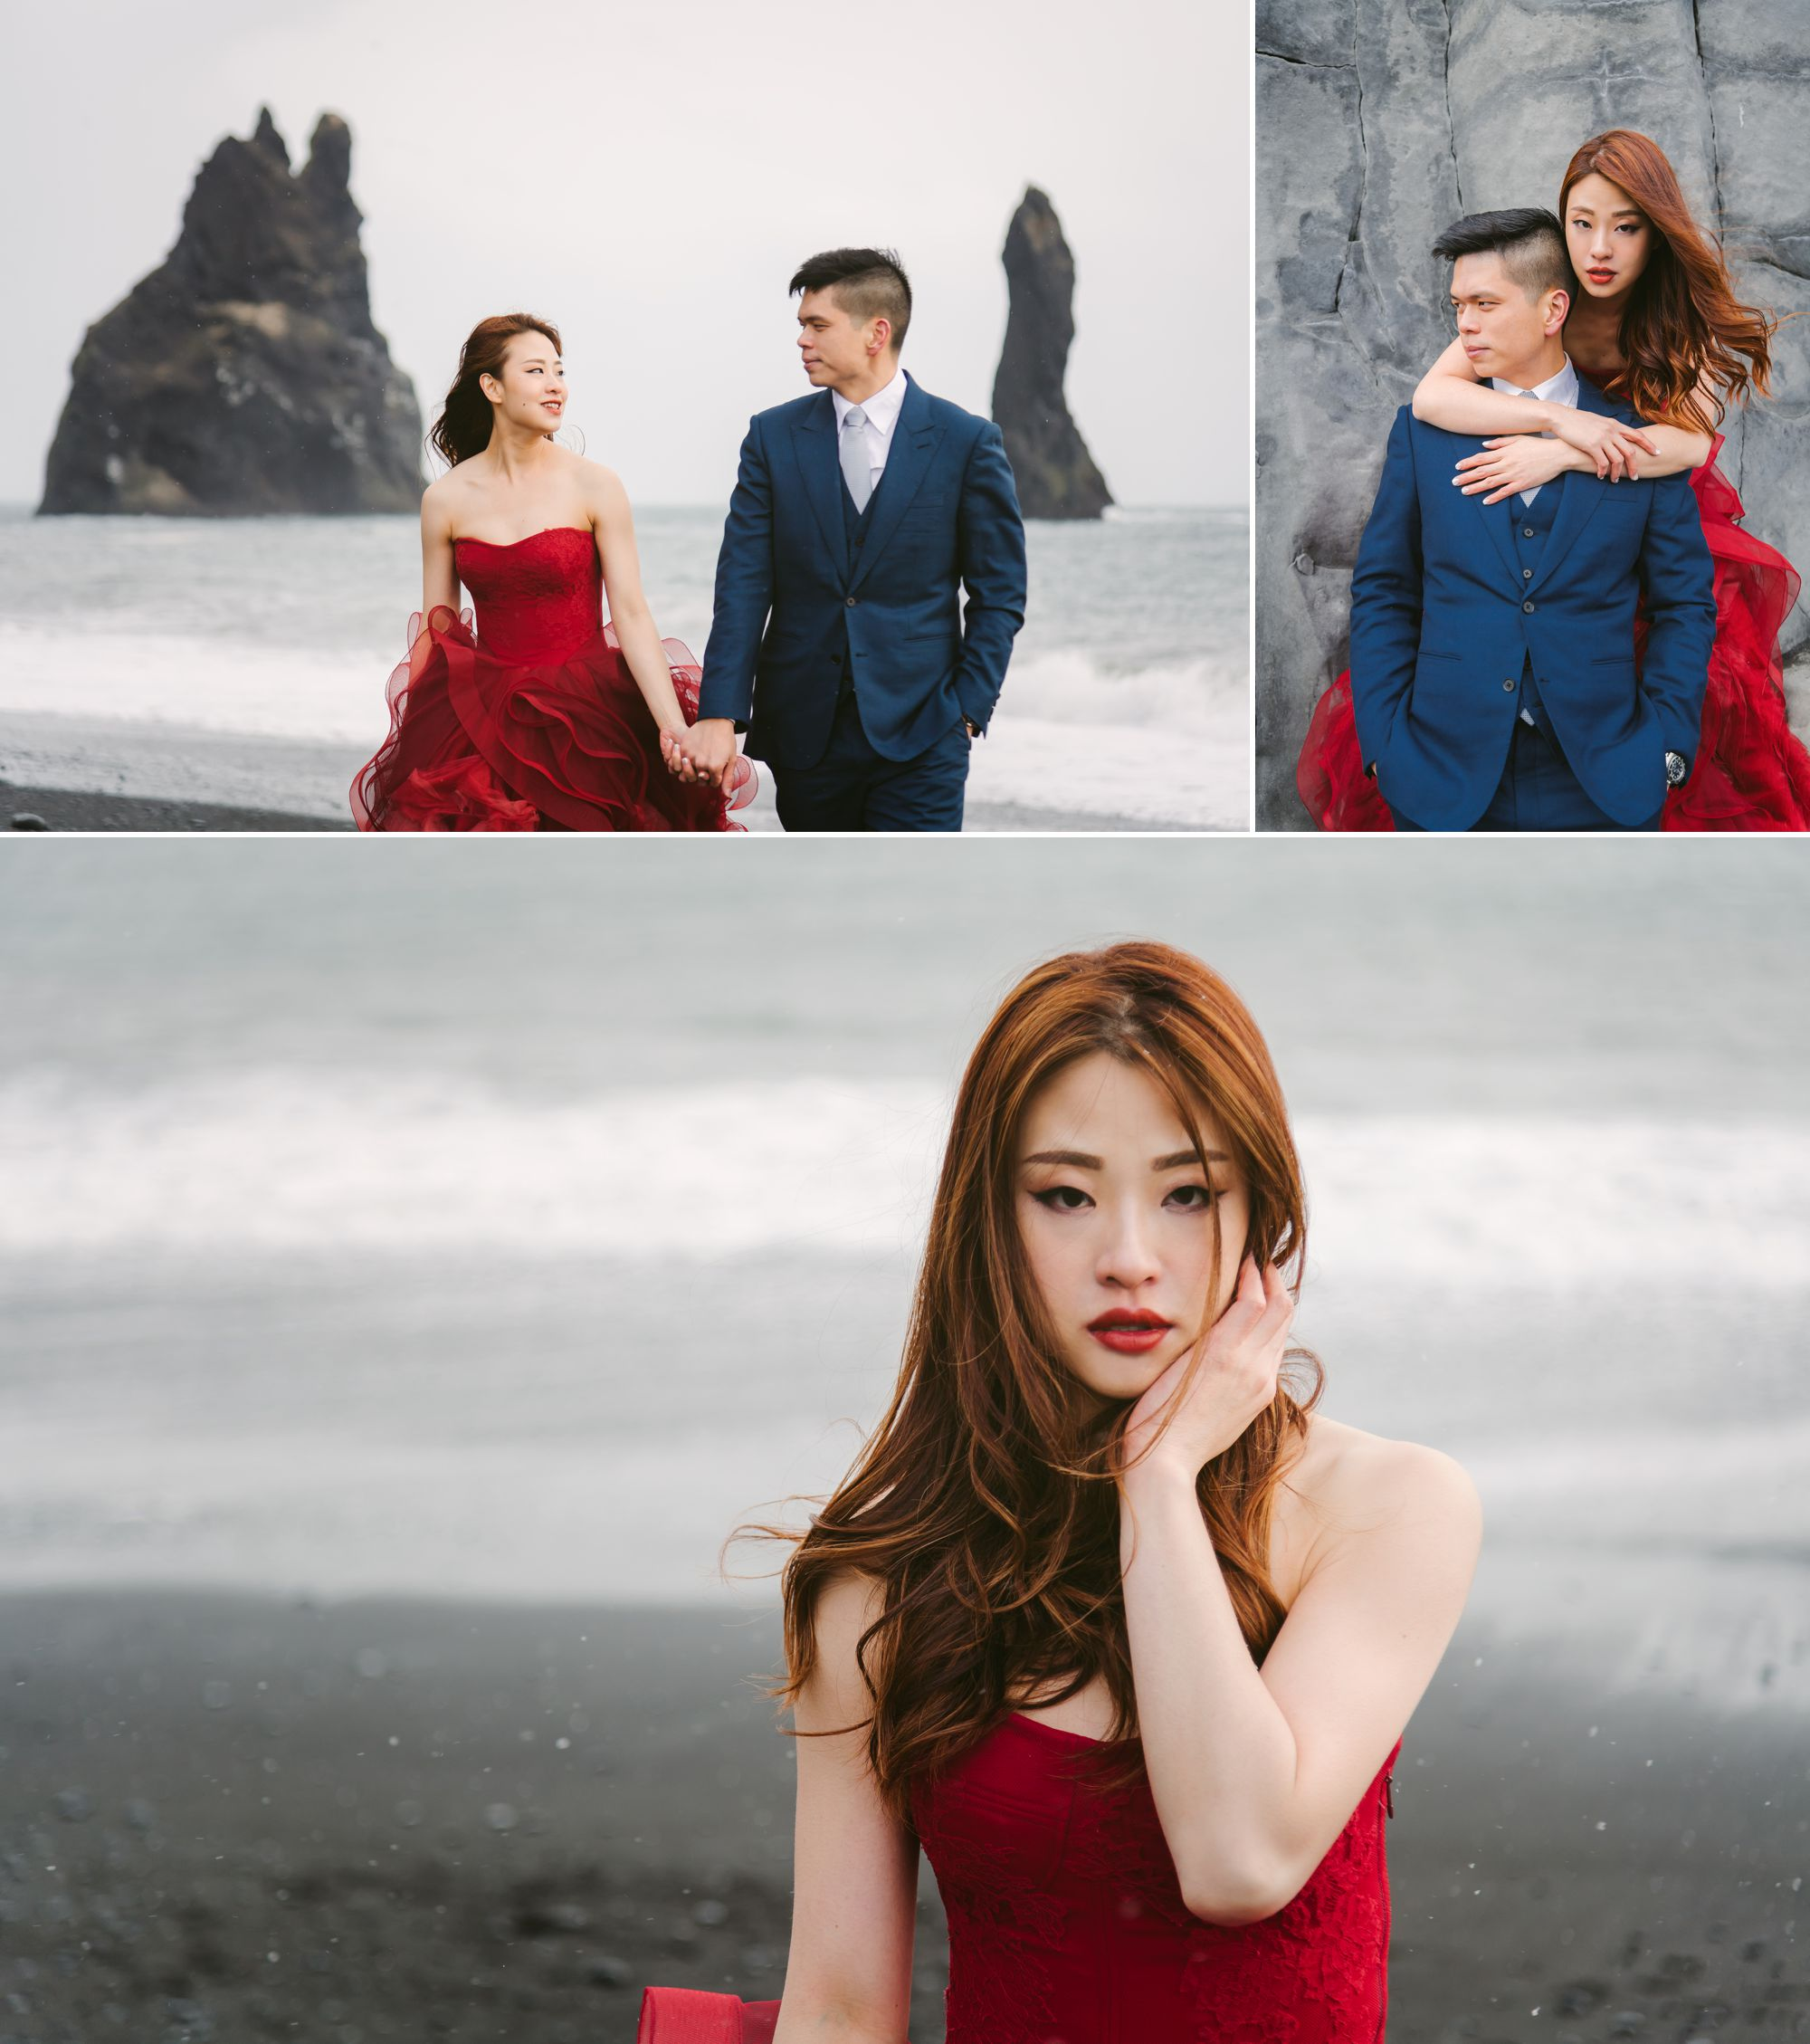 iceland_prewedding_photography 9.jpg